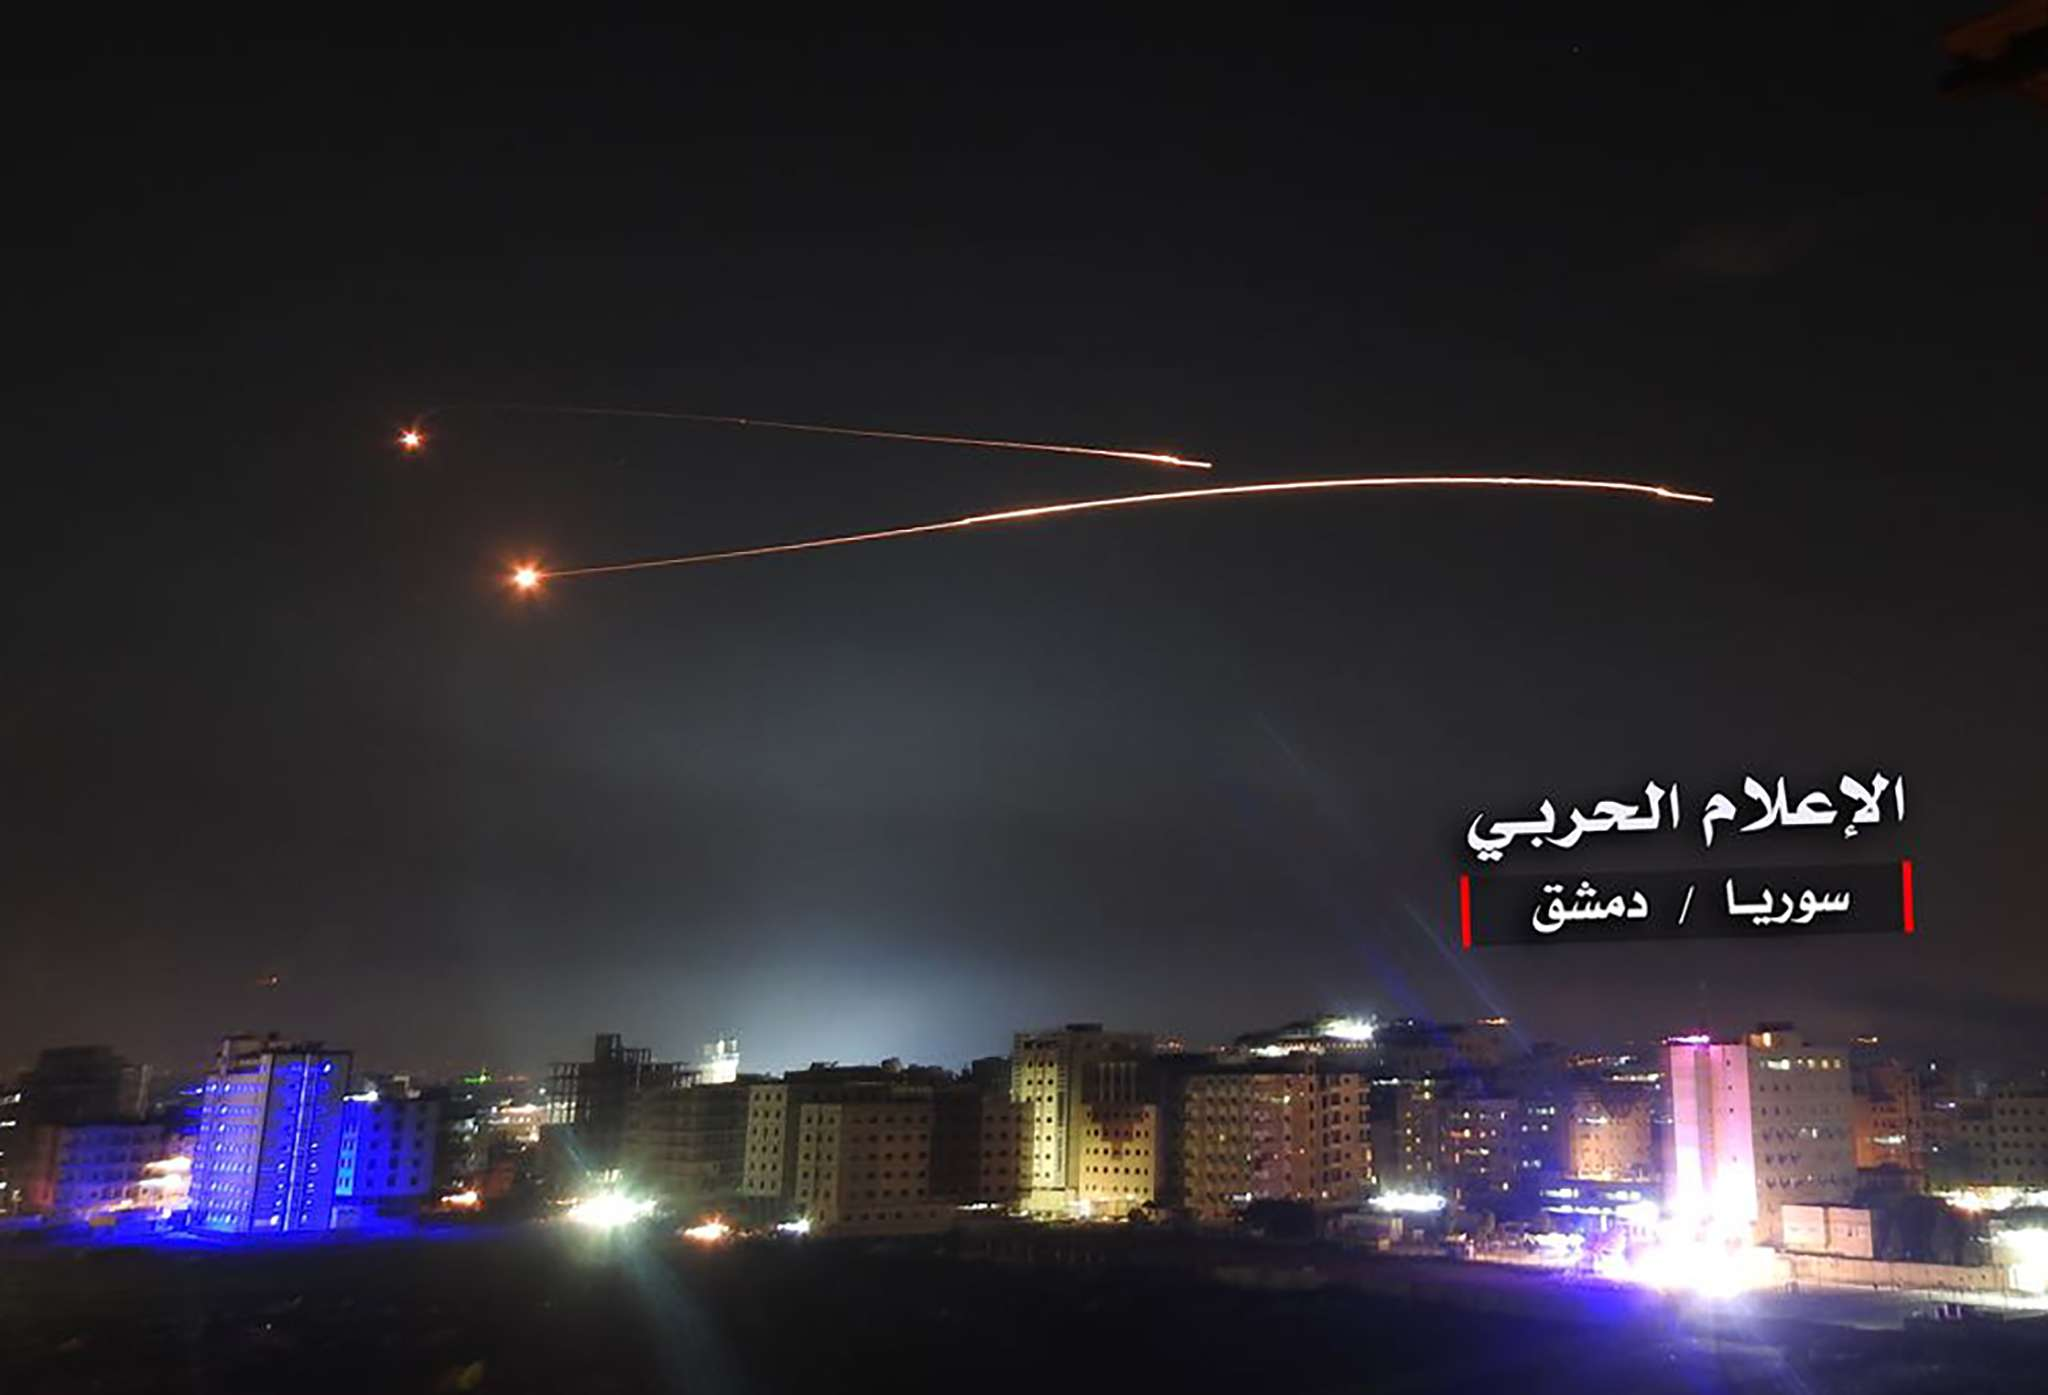 An image released by the government-affiliated 'Central War Media' in Syria purportedly shows Syrian air defence systems intercepting Israeli missiles over Damascus' airspace, on May 10. (AFP / CENTRAL WAR MEDIA).